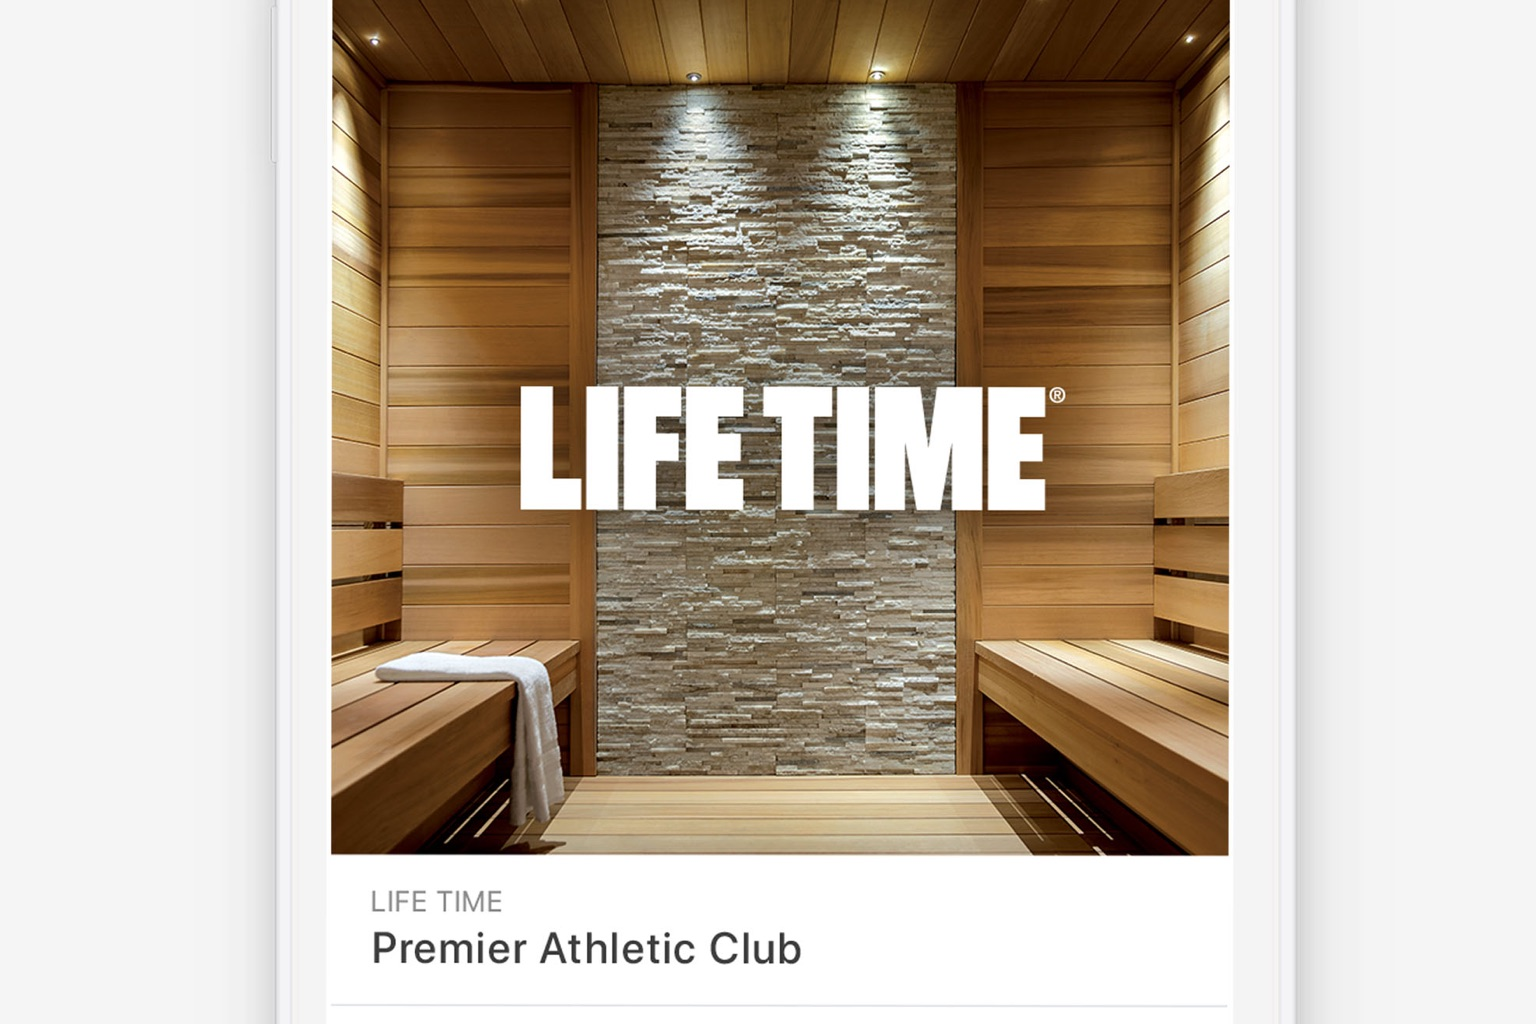 An example of a web page component showing a white Life Time logo over an image of a sauna